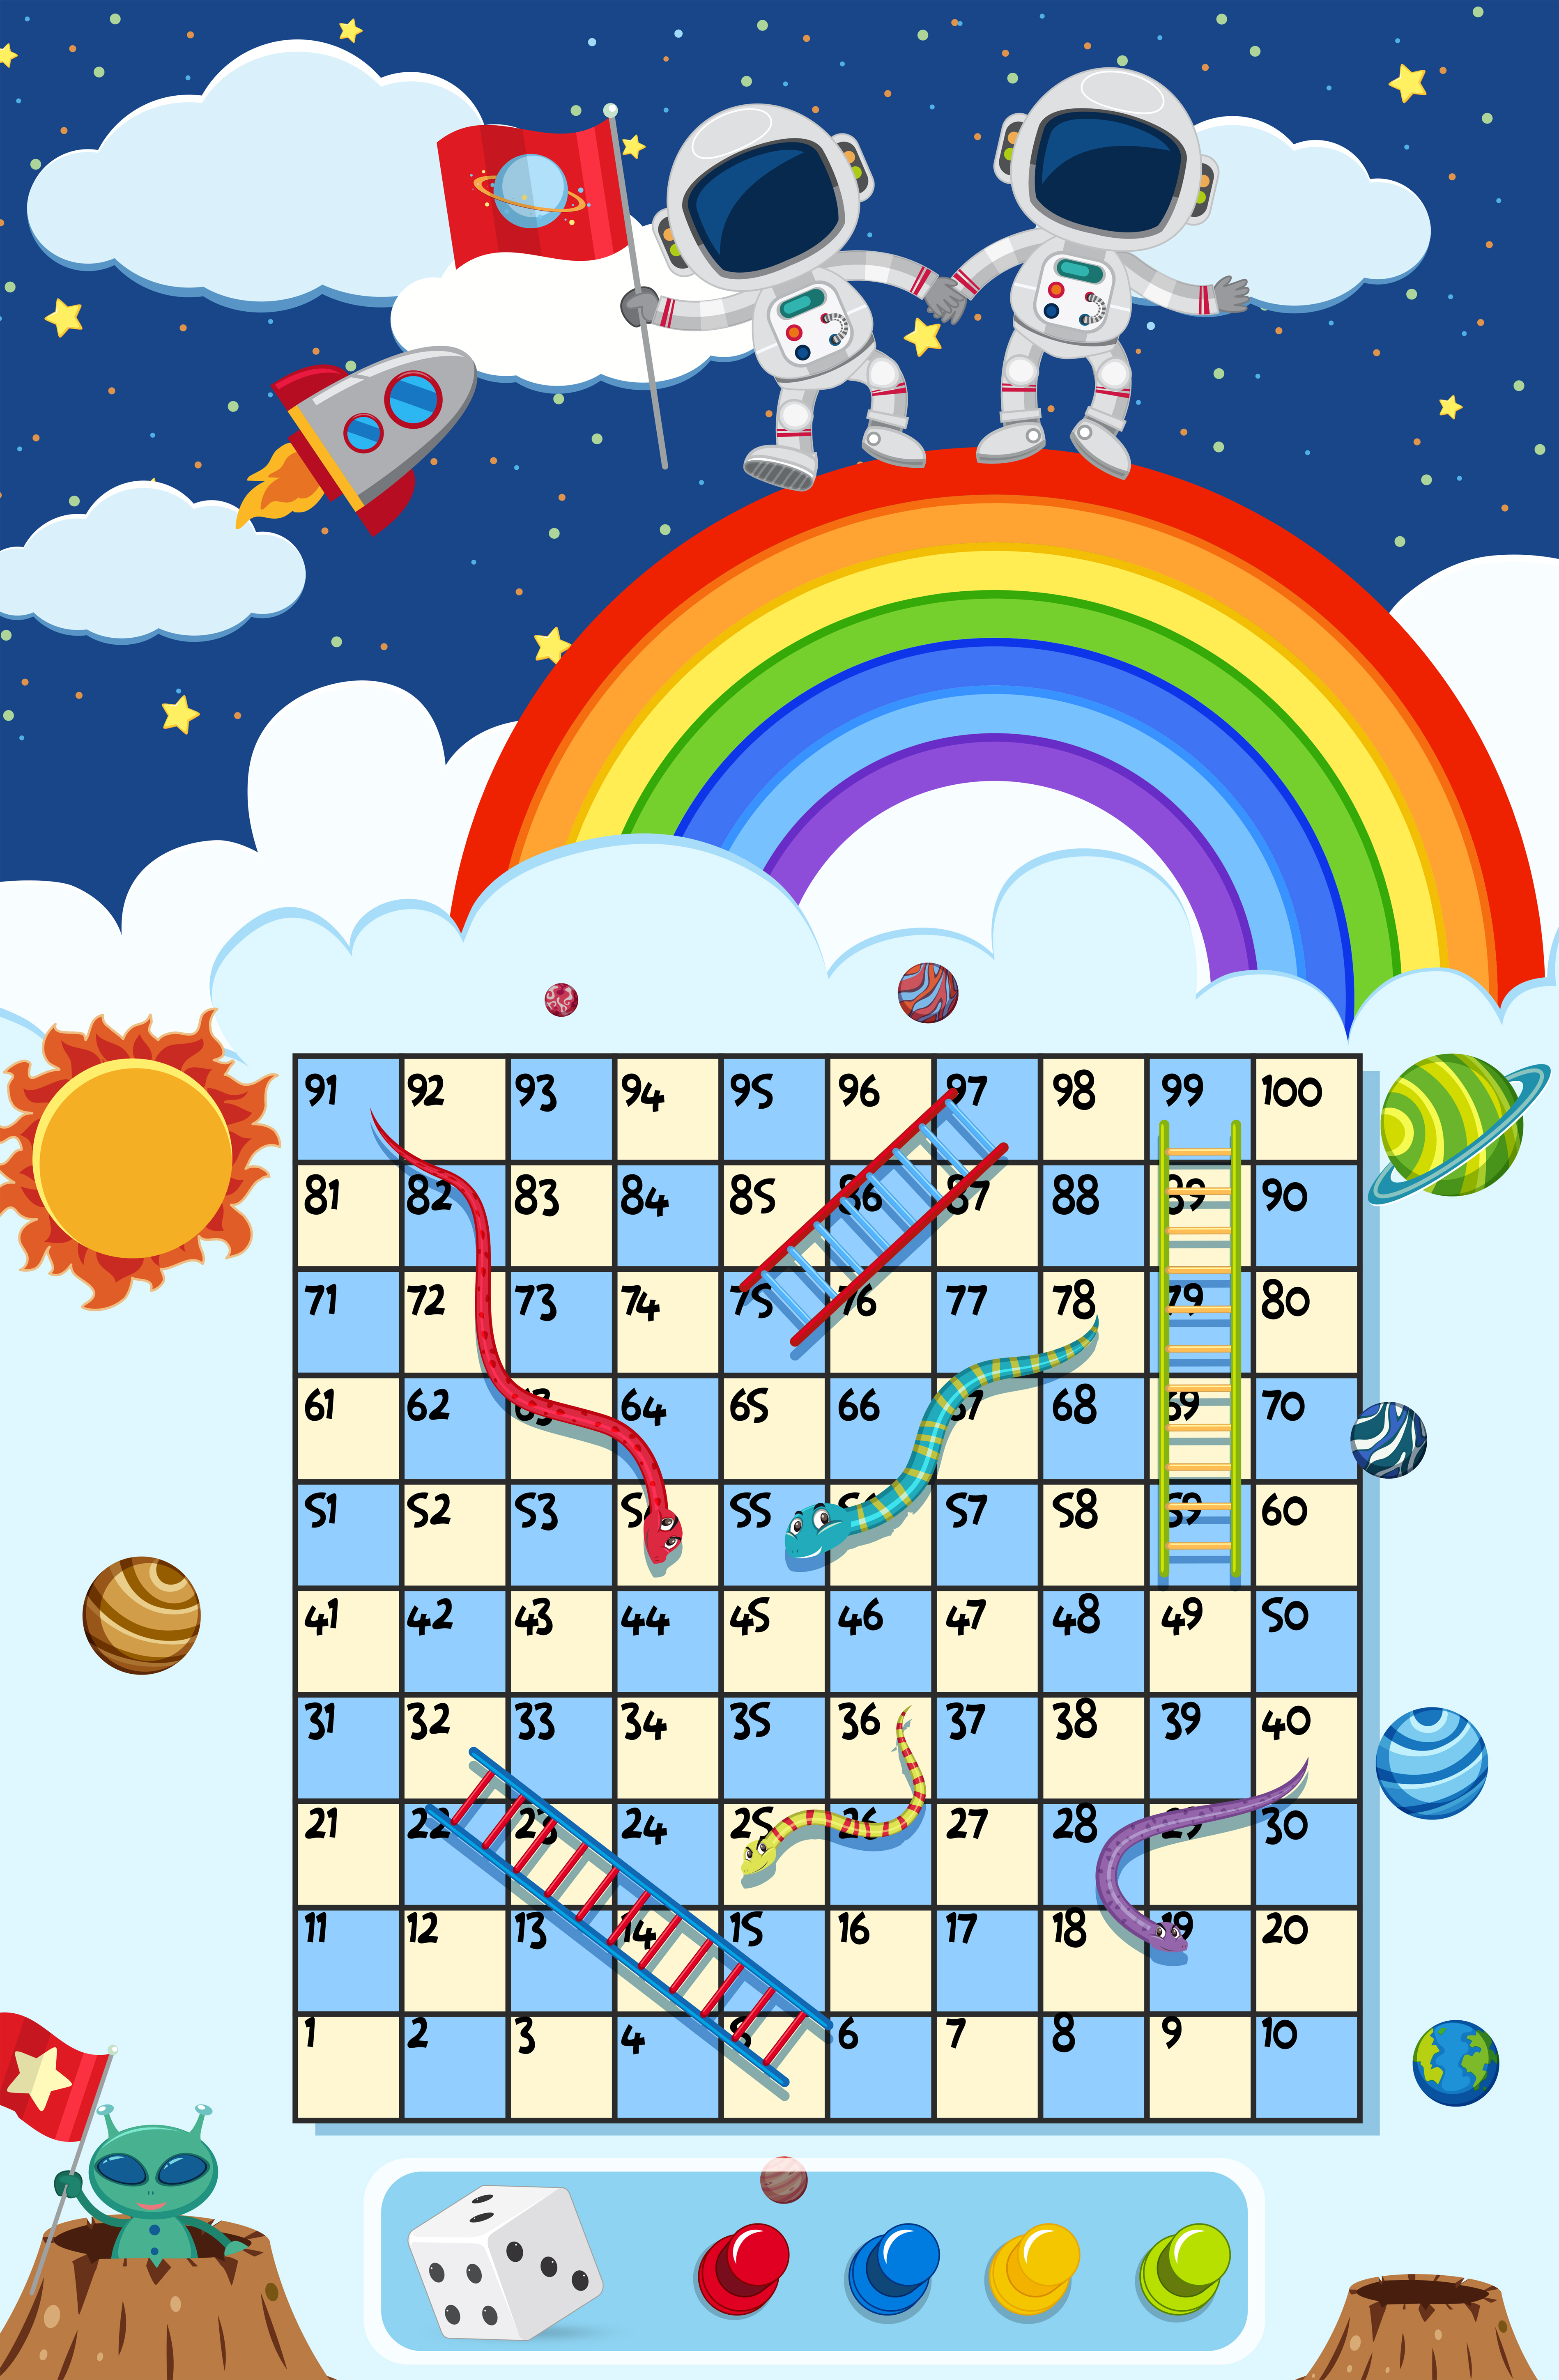 A Snake Ladder Game Space Theme Download Free Vectors Clipart Graphics Vector Art